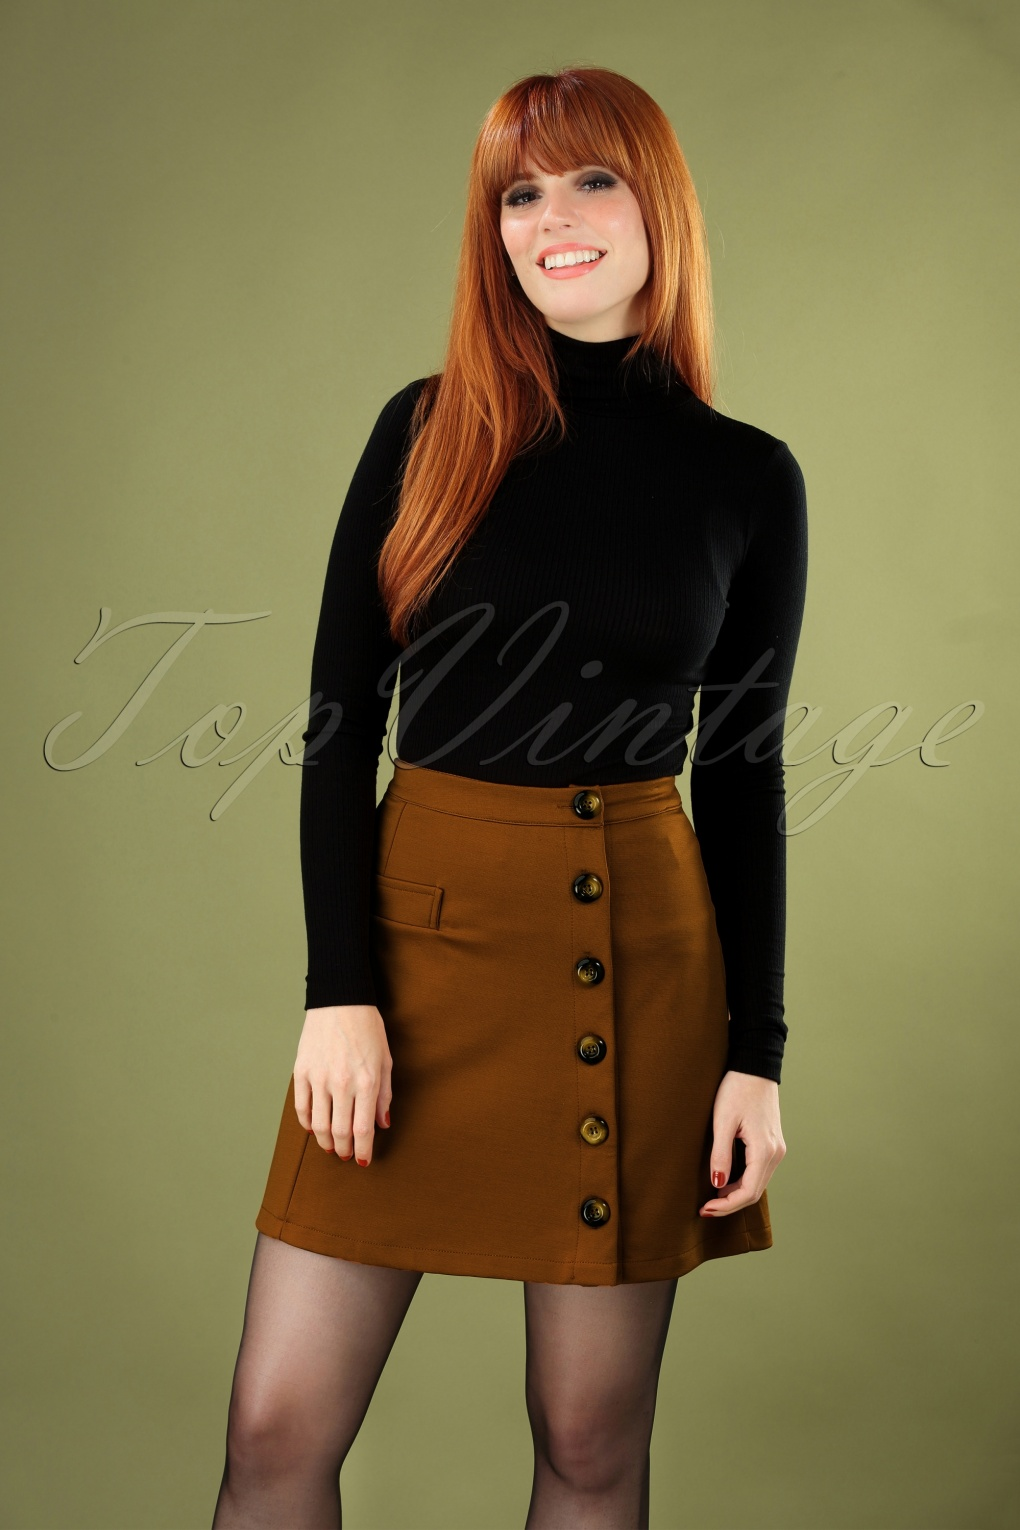 Vintage Inspired Dresses & Clothing UK 60s Beatrice Skirt in Tobacco £25.80 AT vintagedancer.com